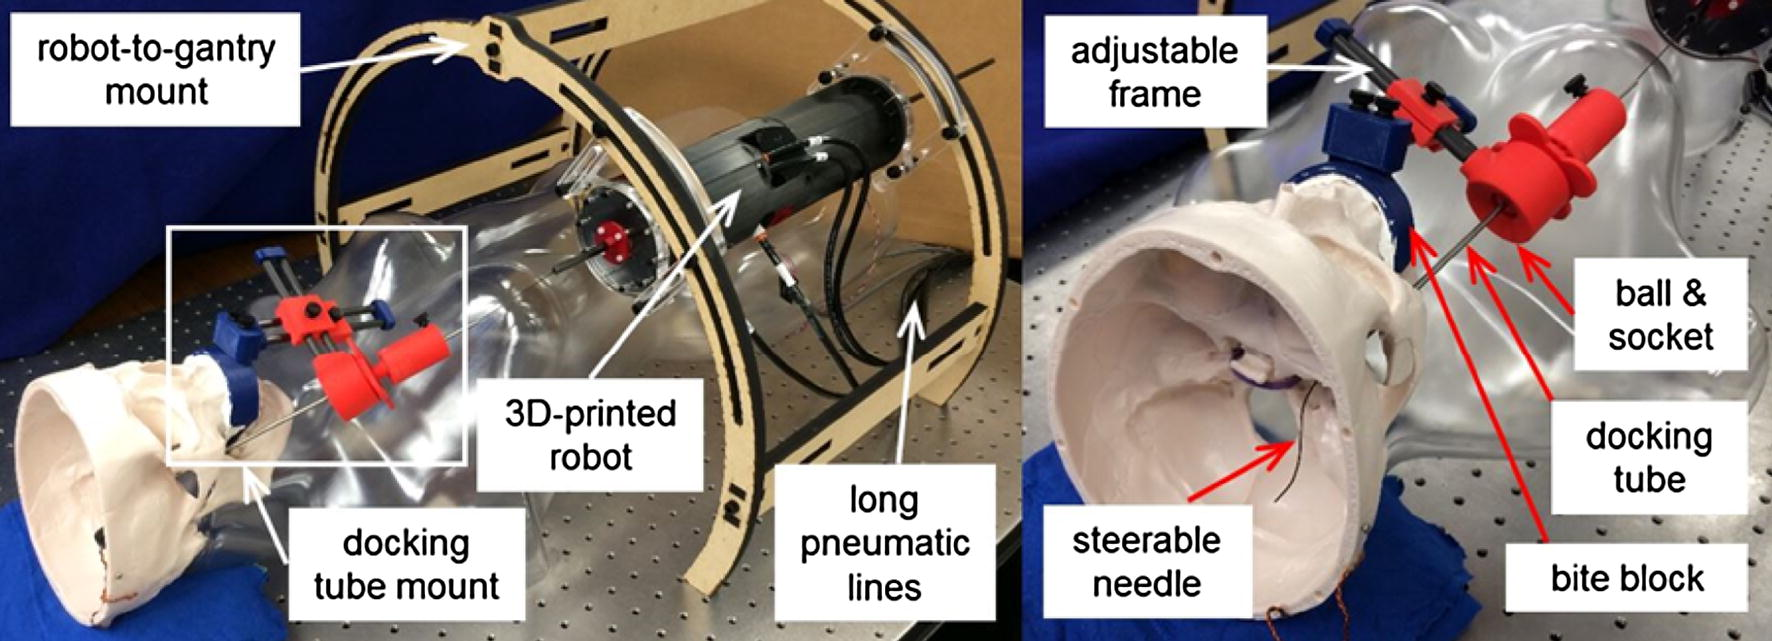 Stereotactic Systems for MRI-Guided Neurosurgeries: A State